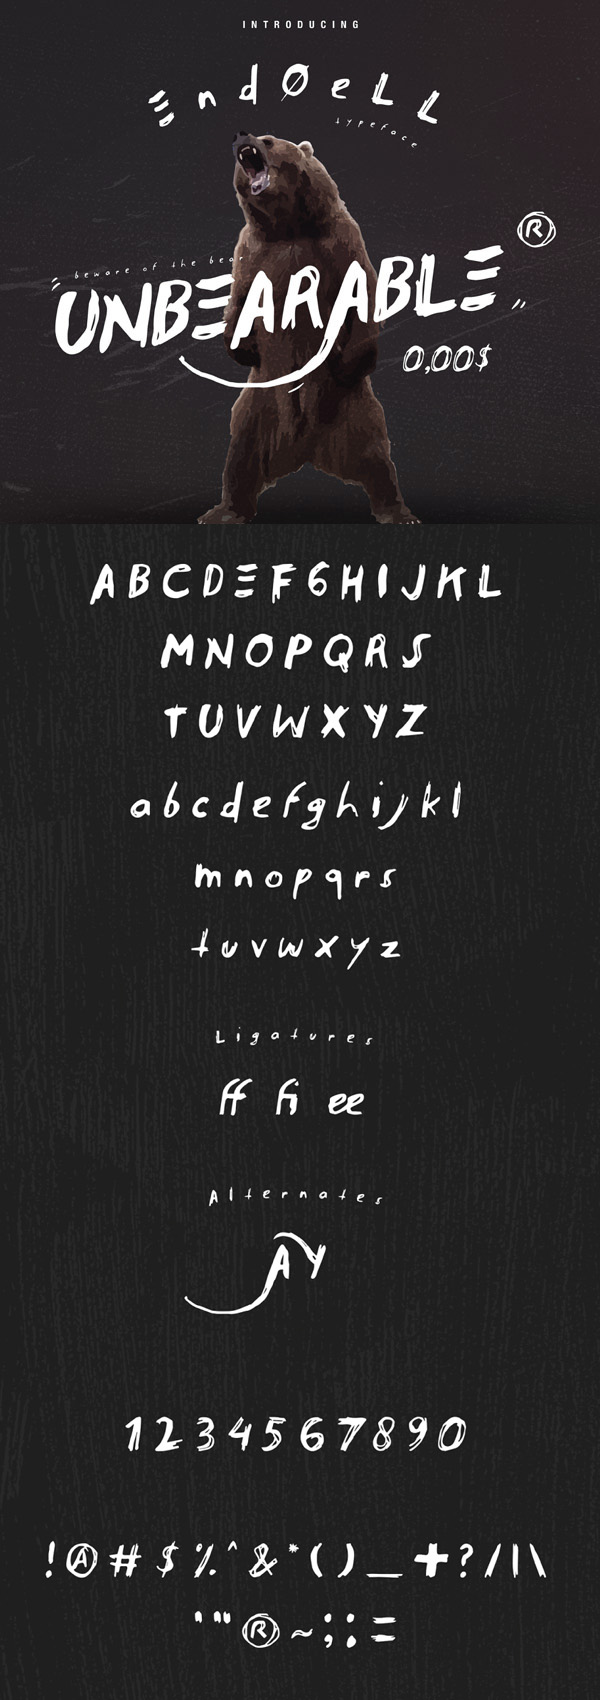 Endoell Free Vintage Font - 50 Best Free Brush Fonts